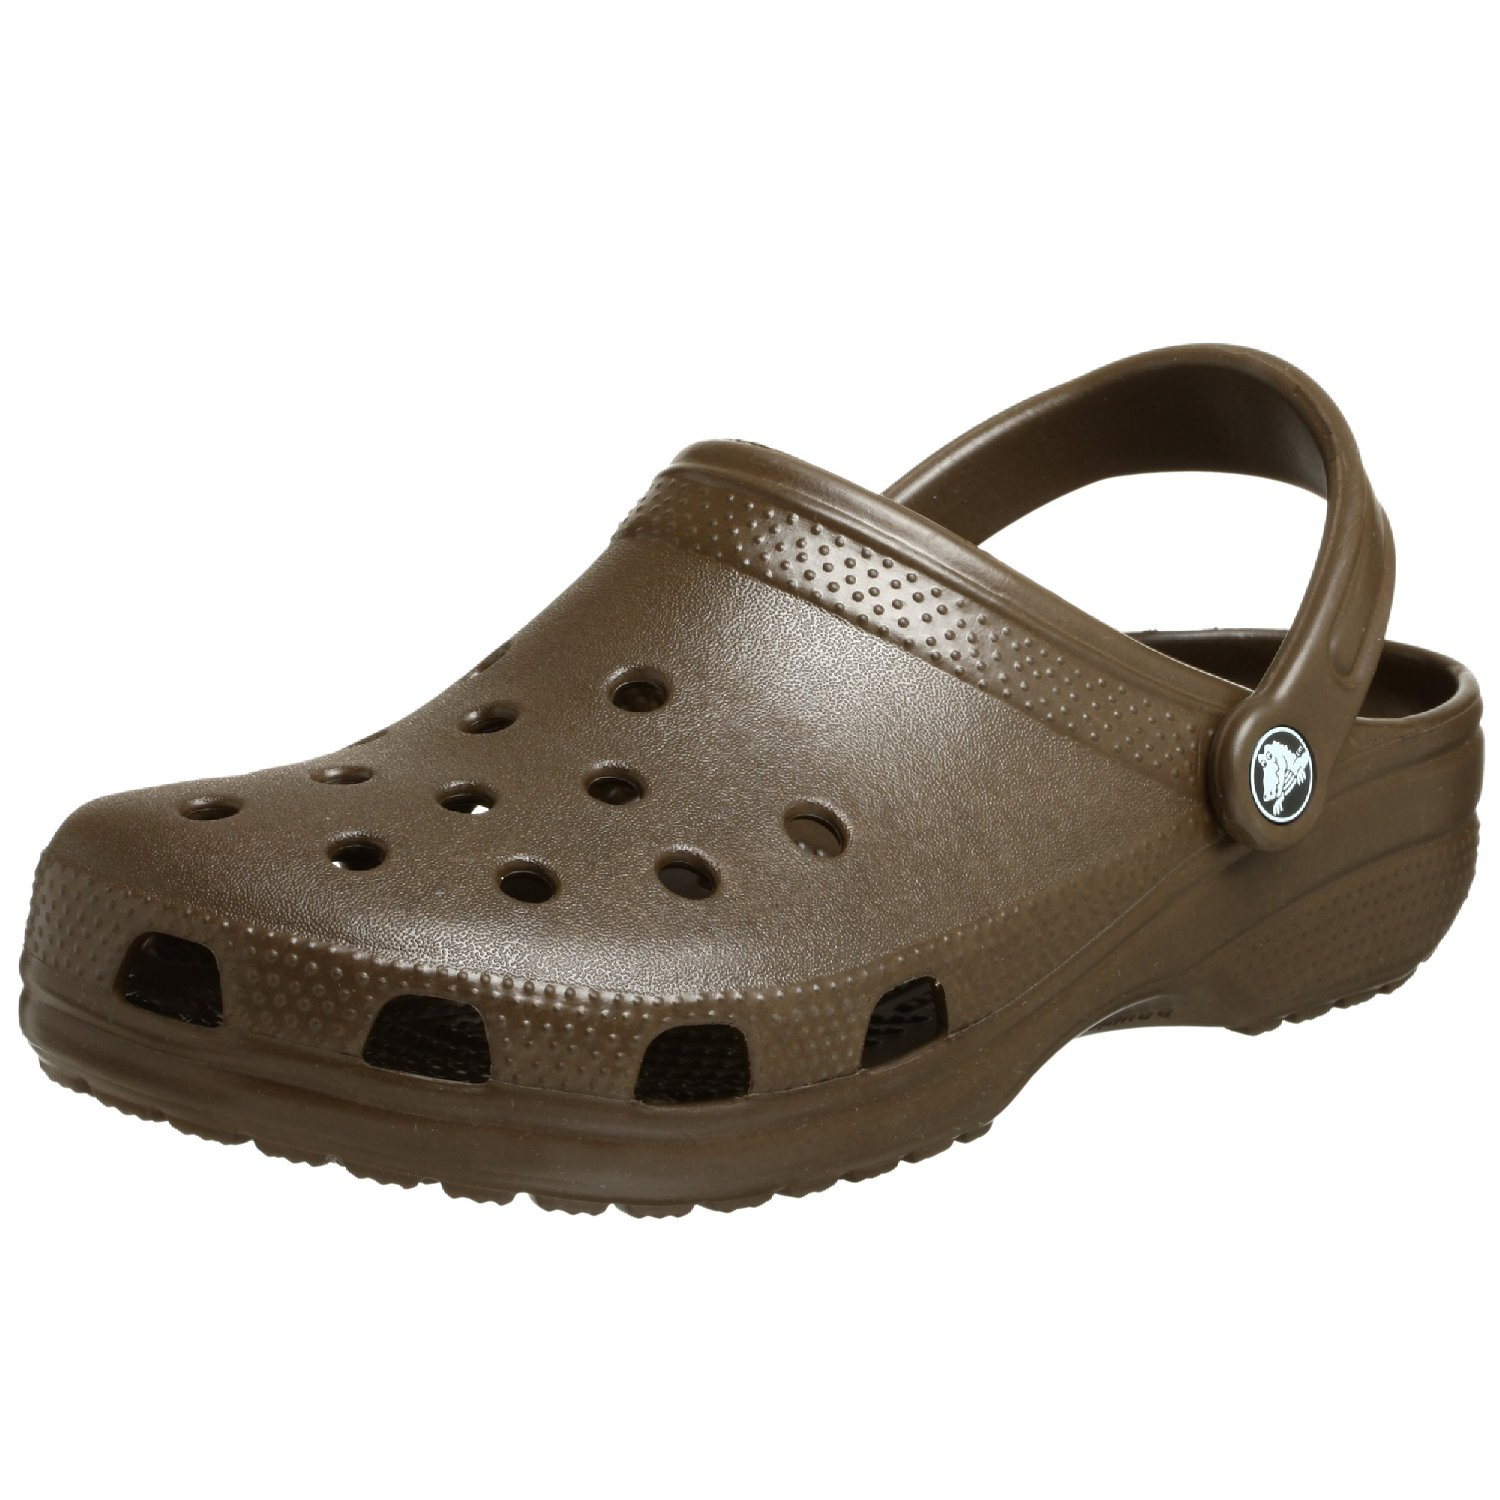 09408a1bf8ee7 Get Quotations · Crocs girls Crocs Ladies Classic Unisex Croslite  Breathable Strap Beach Clog Brown Brown UK Size 12